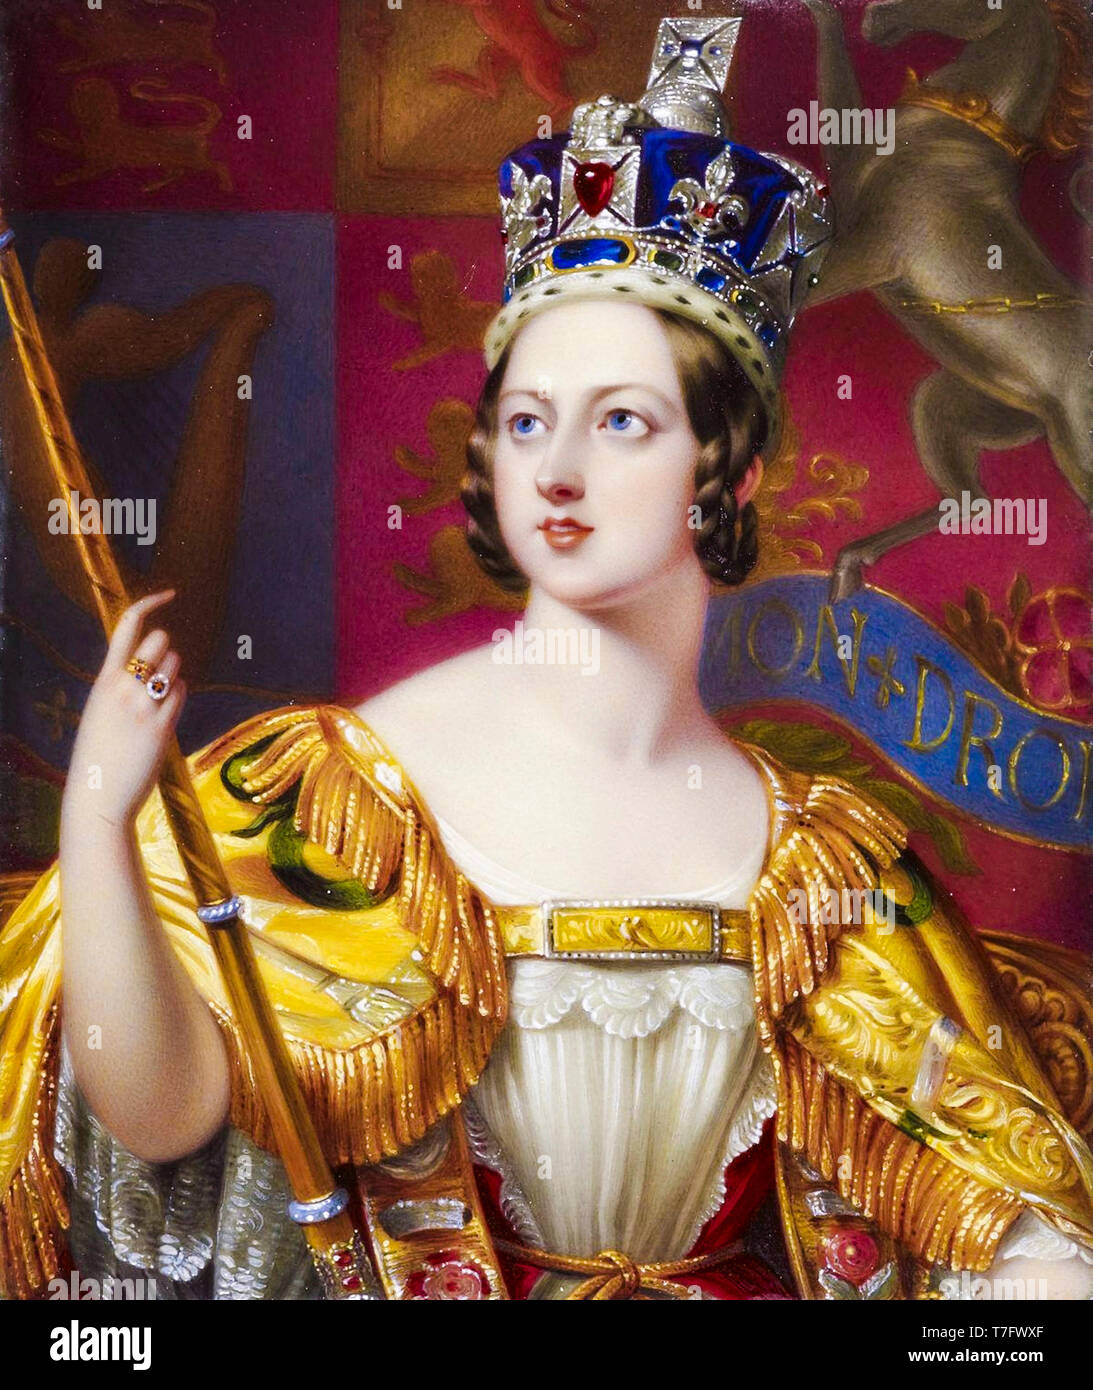 Queen Victoria in her coronation robes with the Imperial State Crown, portrait, 1843 - Stock Image